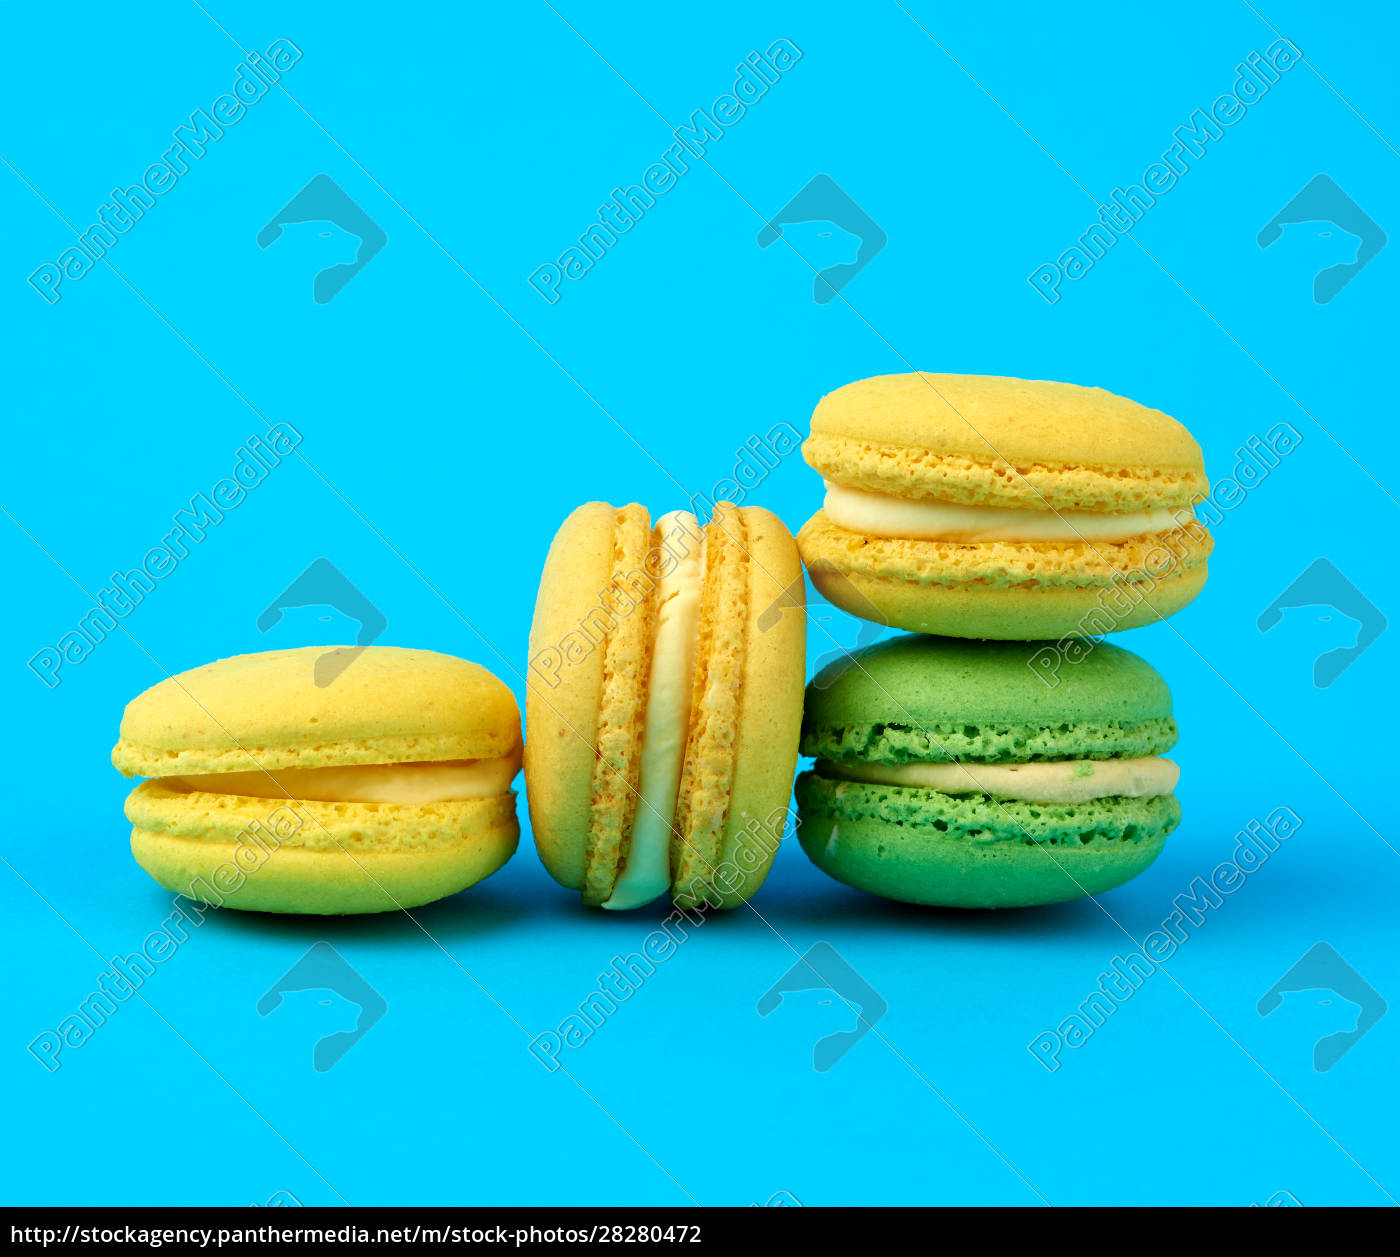 multi-colored, round, baked, macarons, cakes, on - 28280472